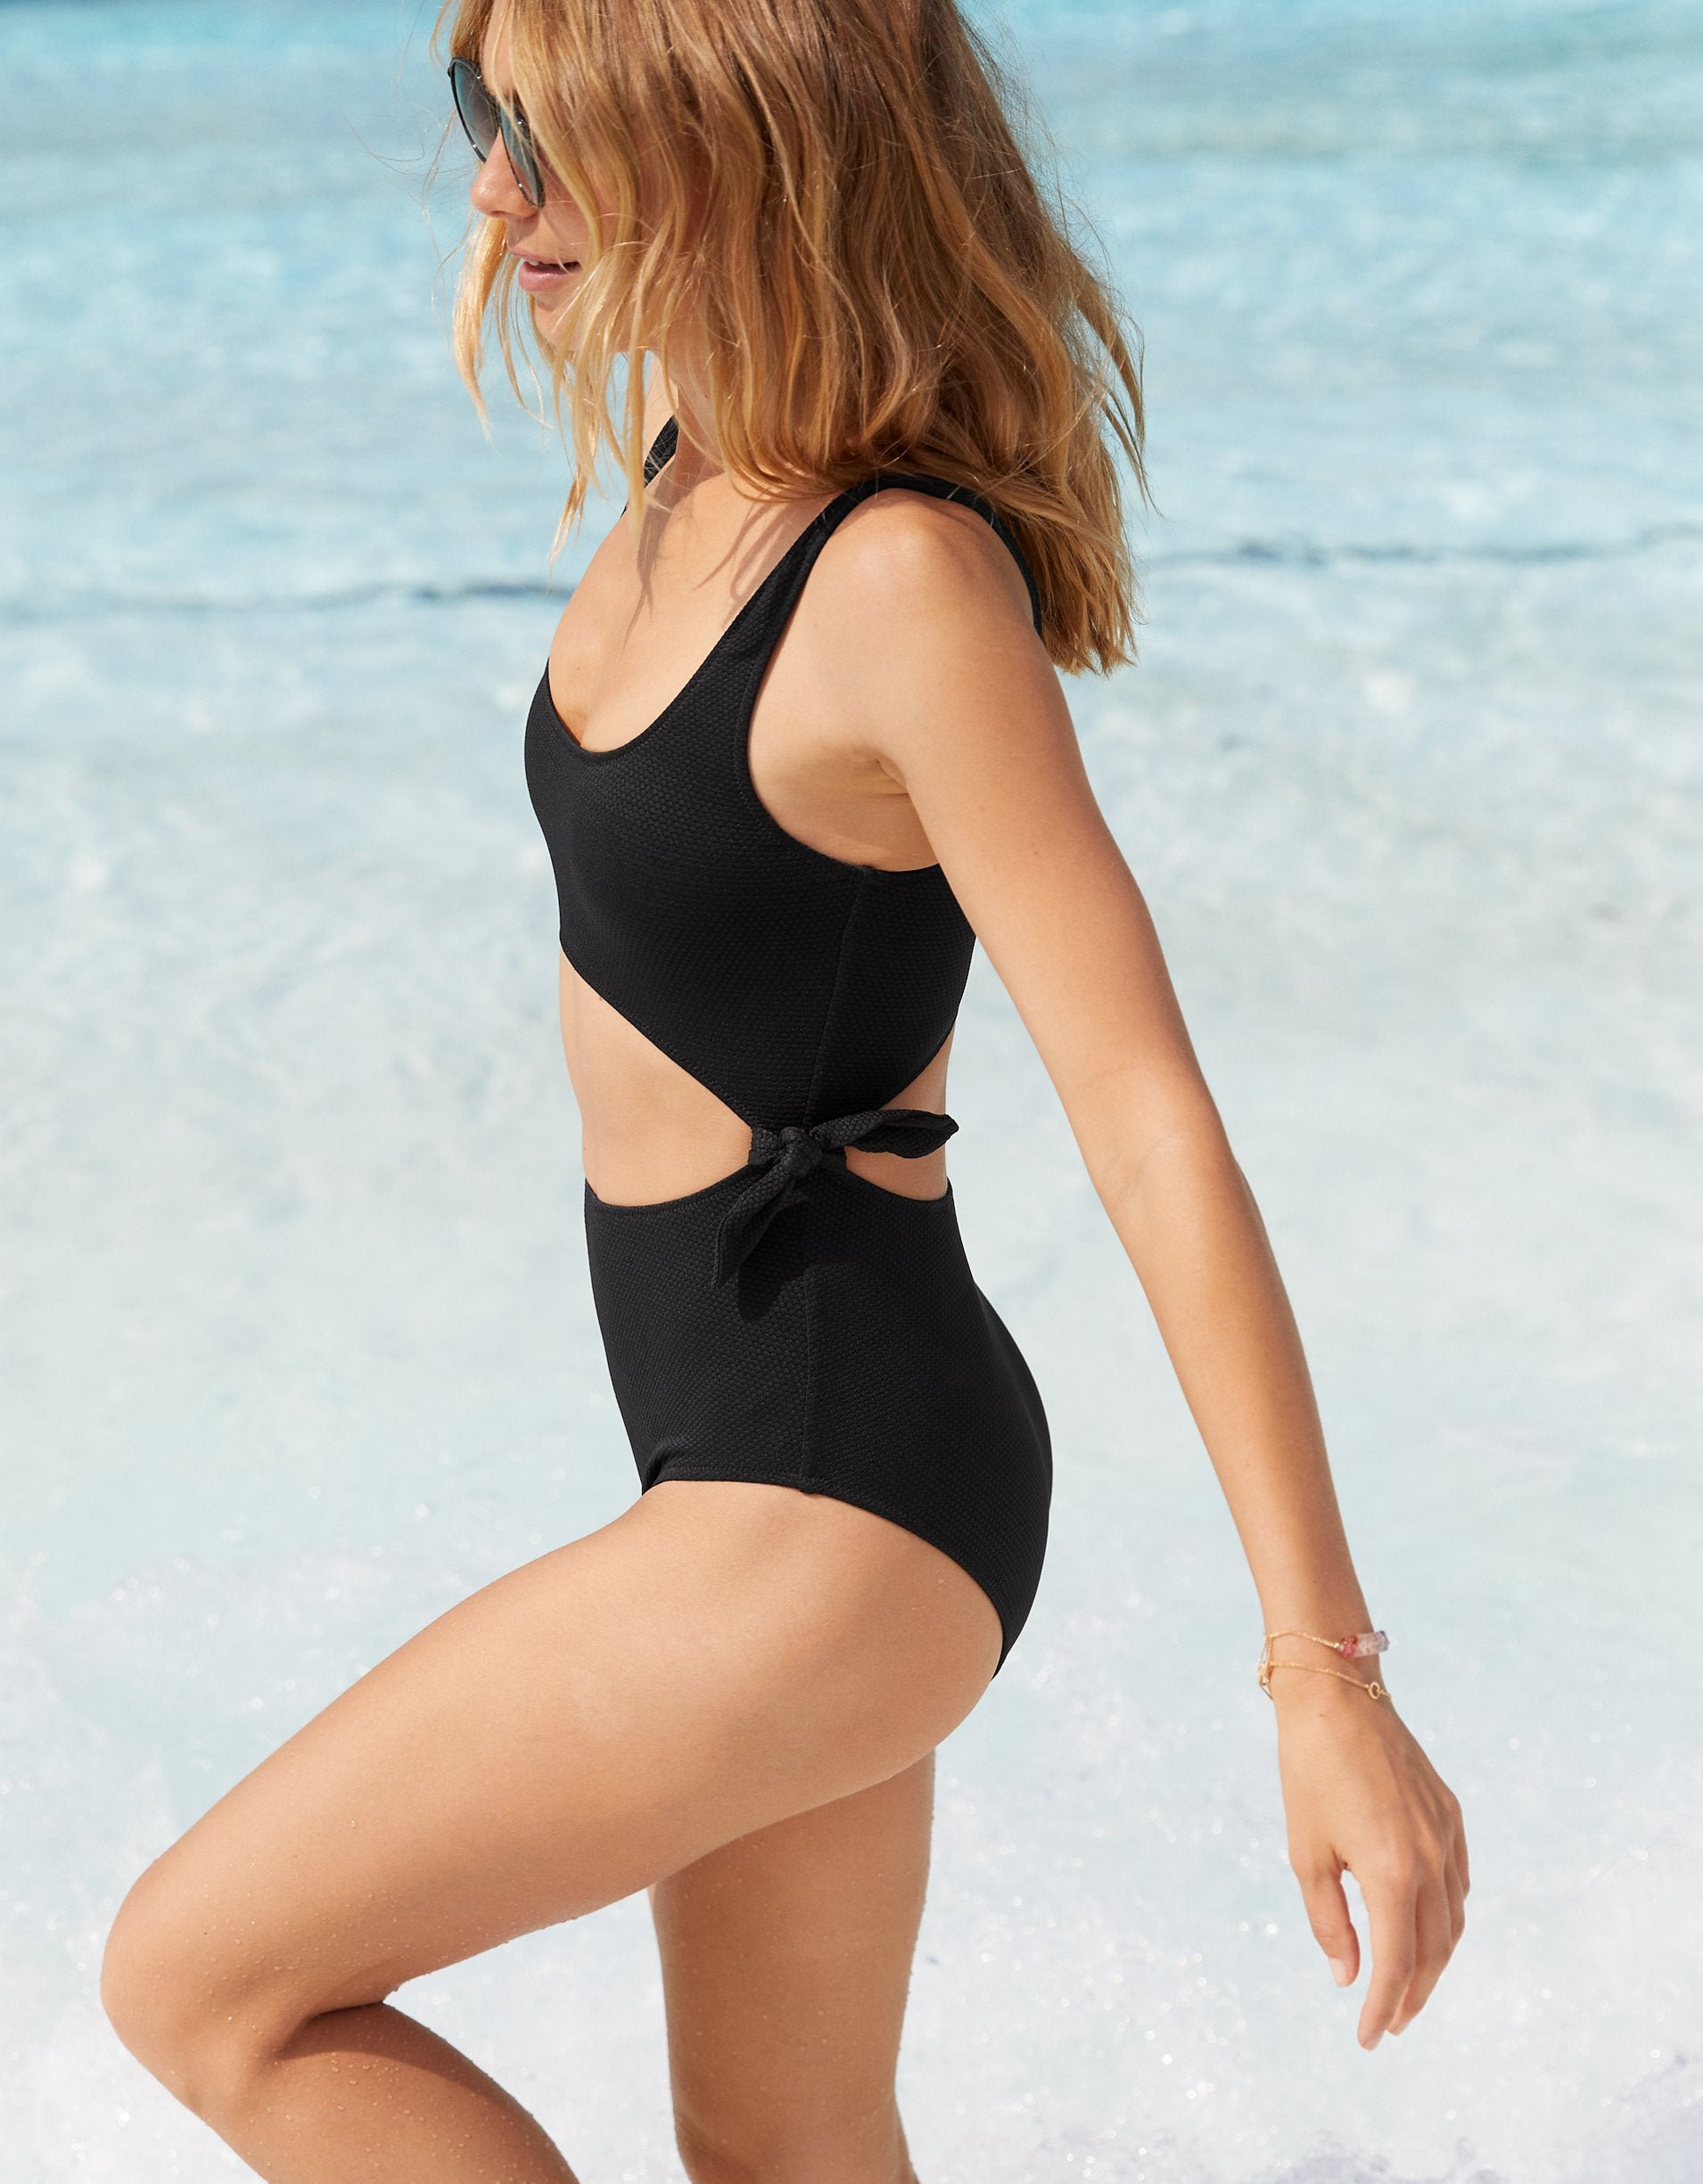 A model in the black one piece with open front and back and ties at the sides